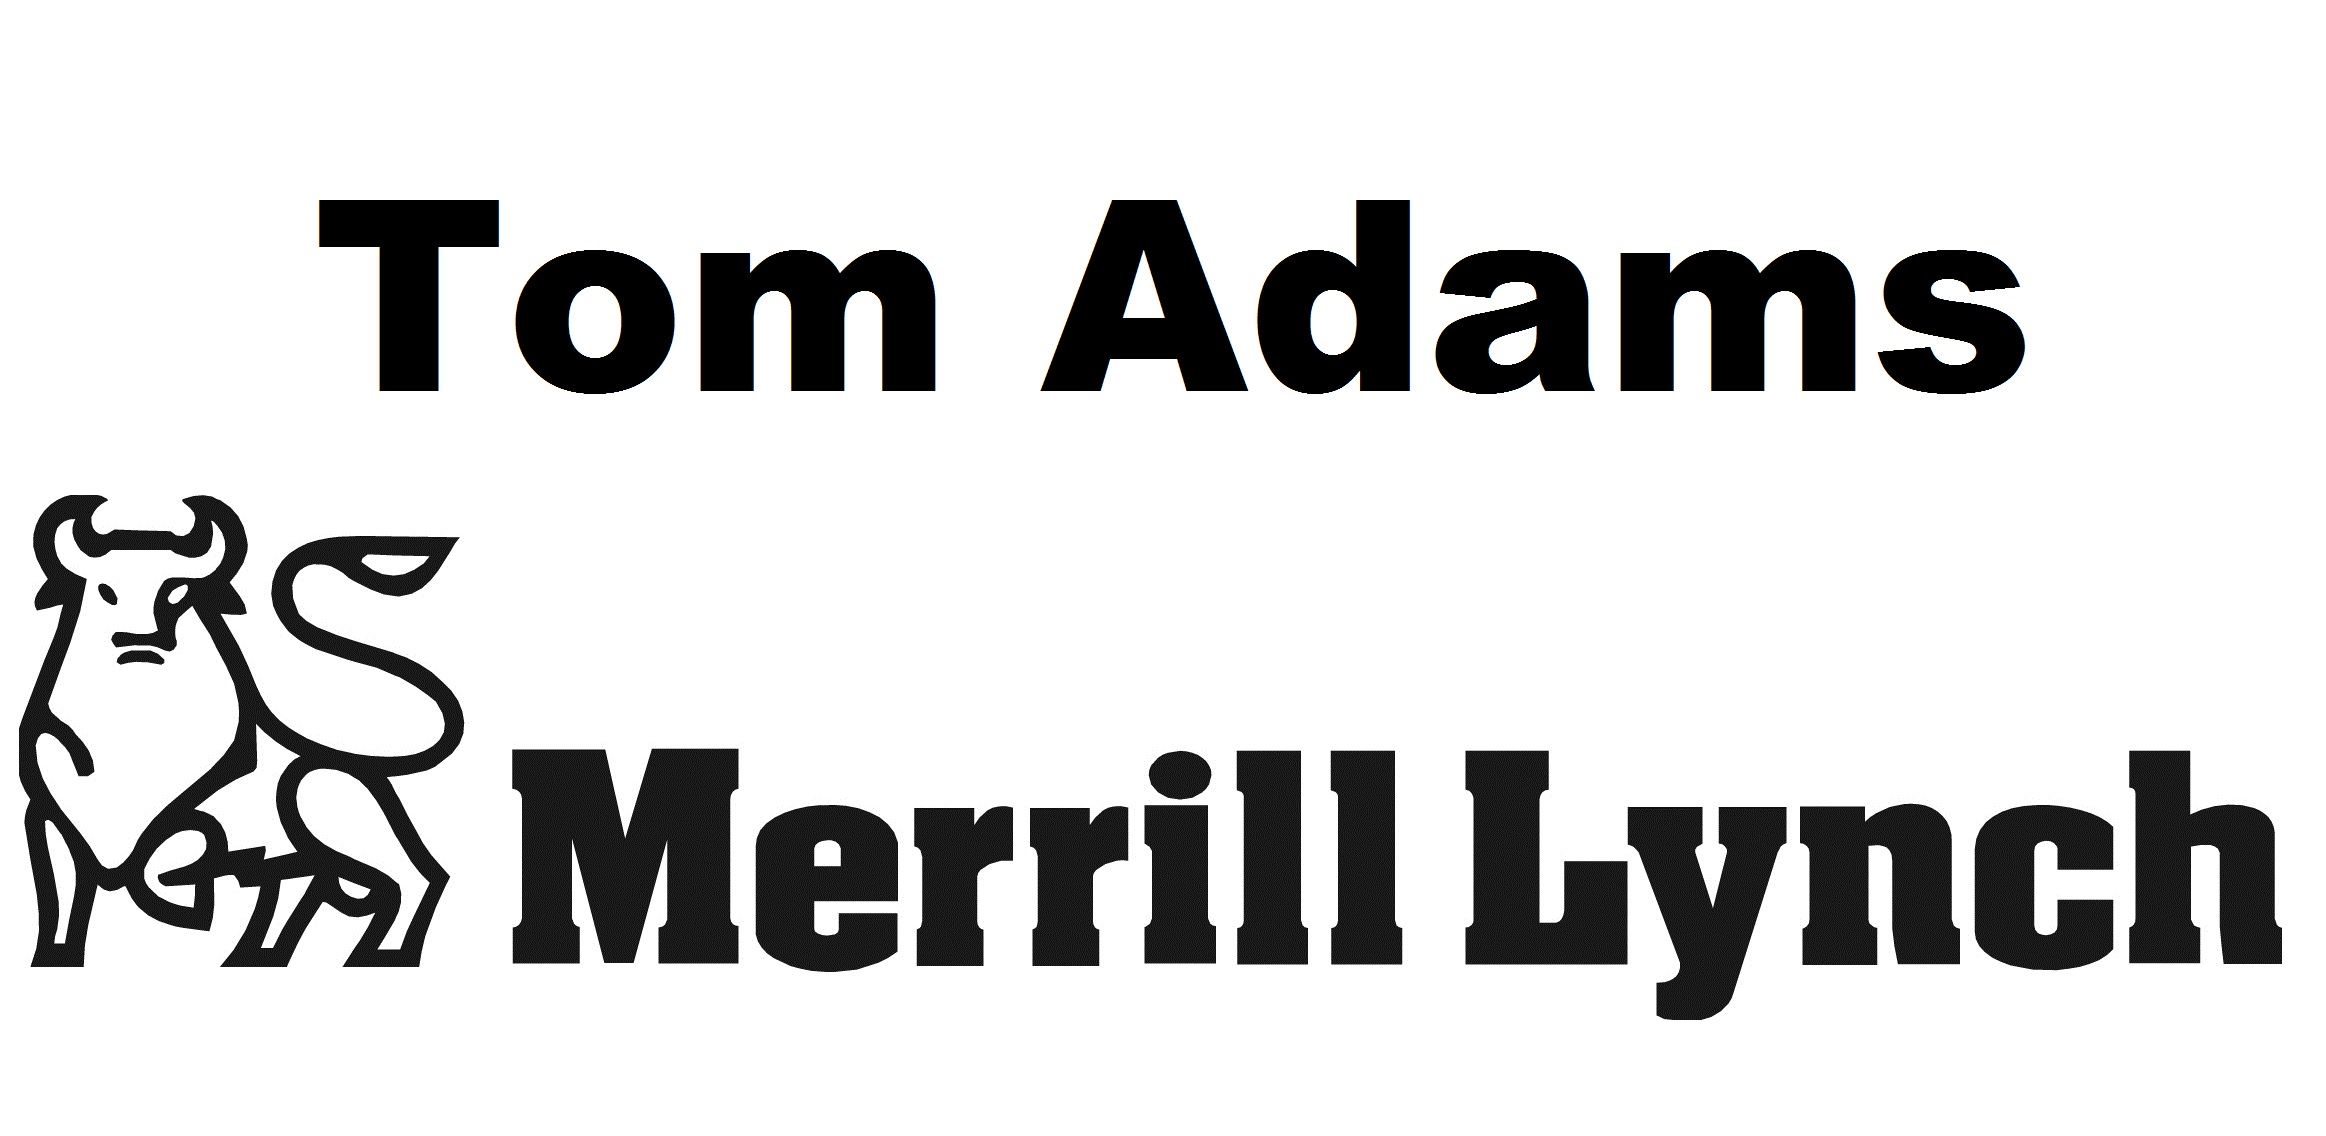 merril lynch tom adams